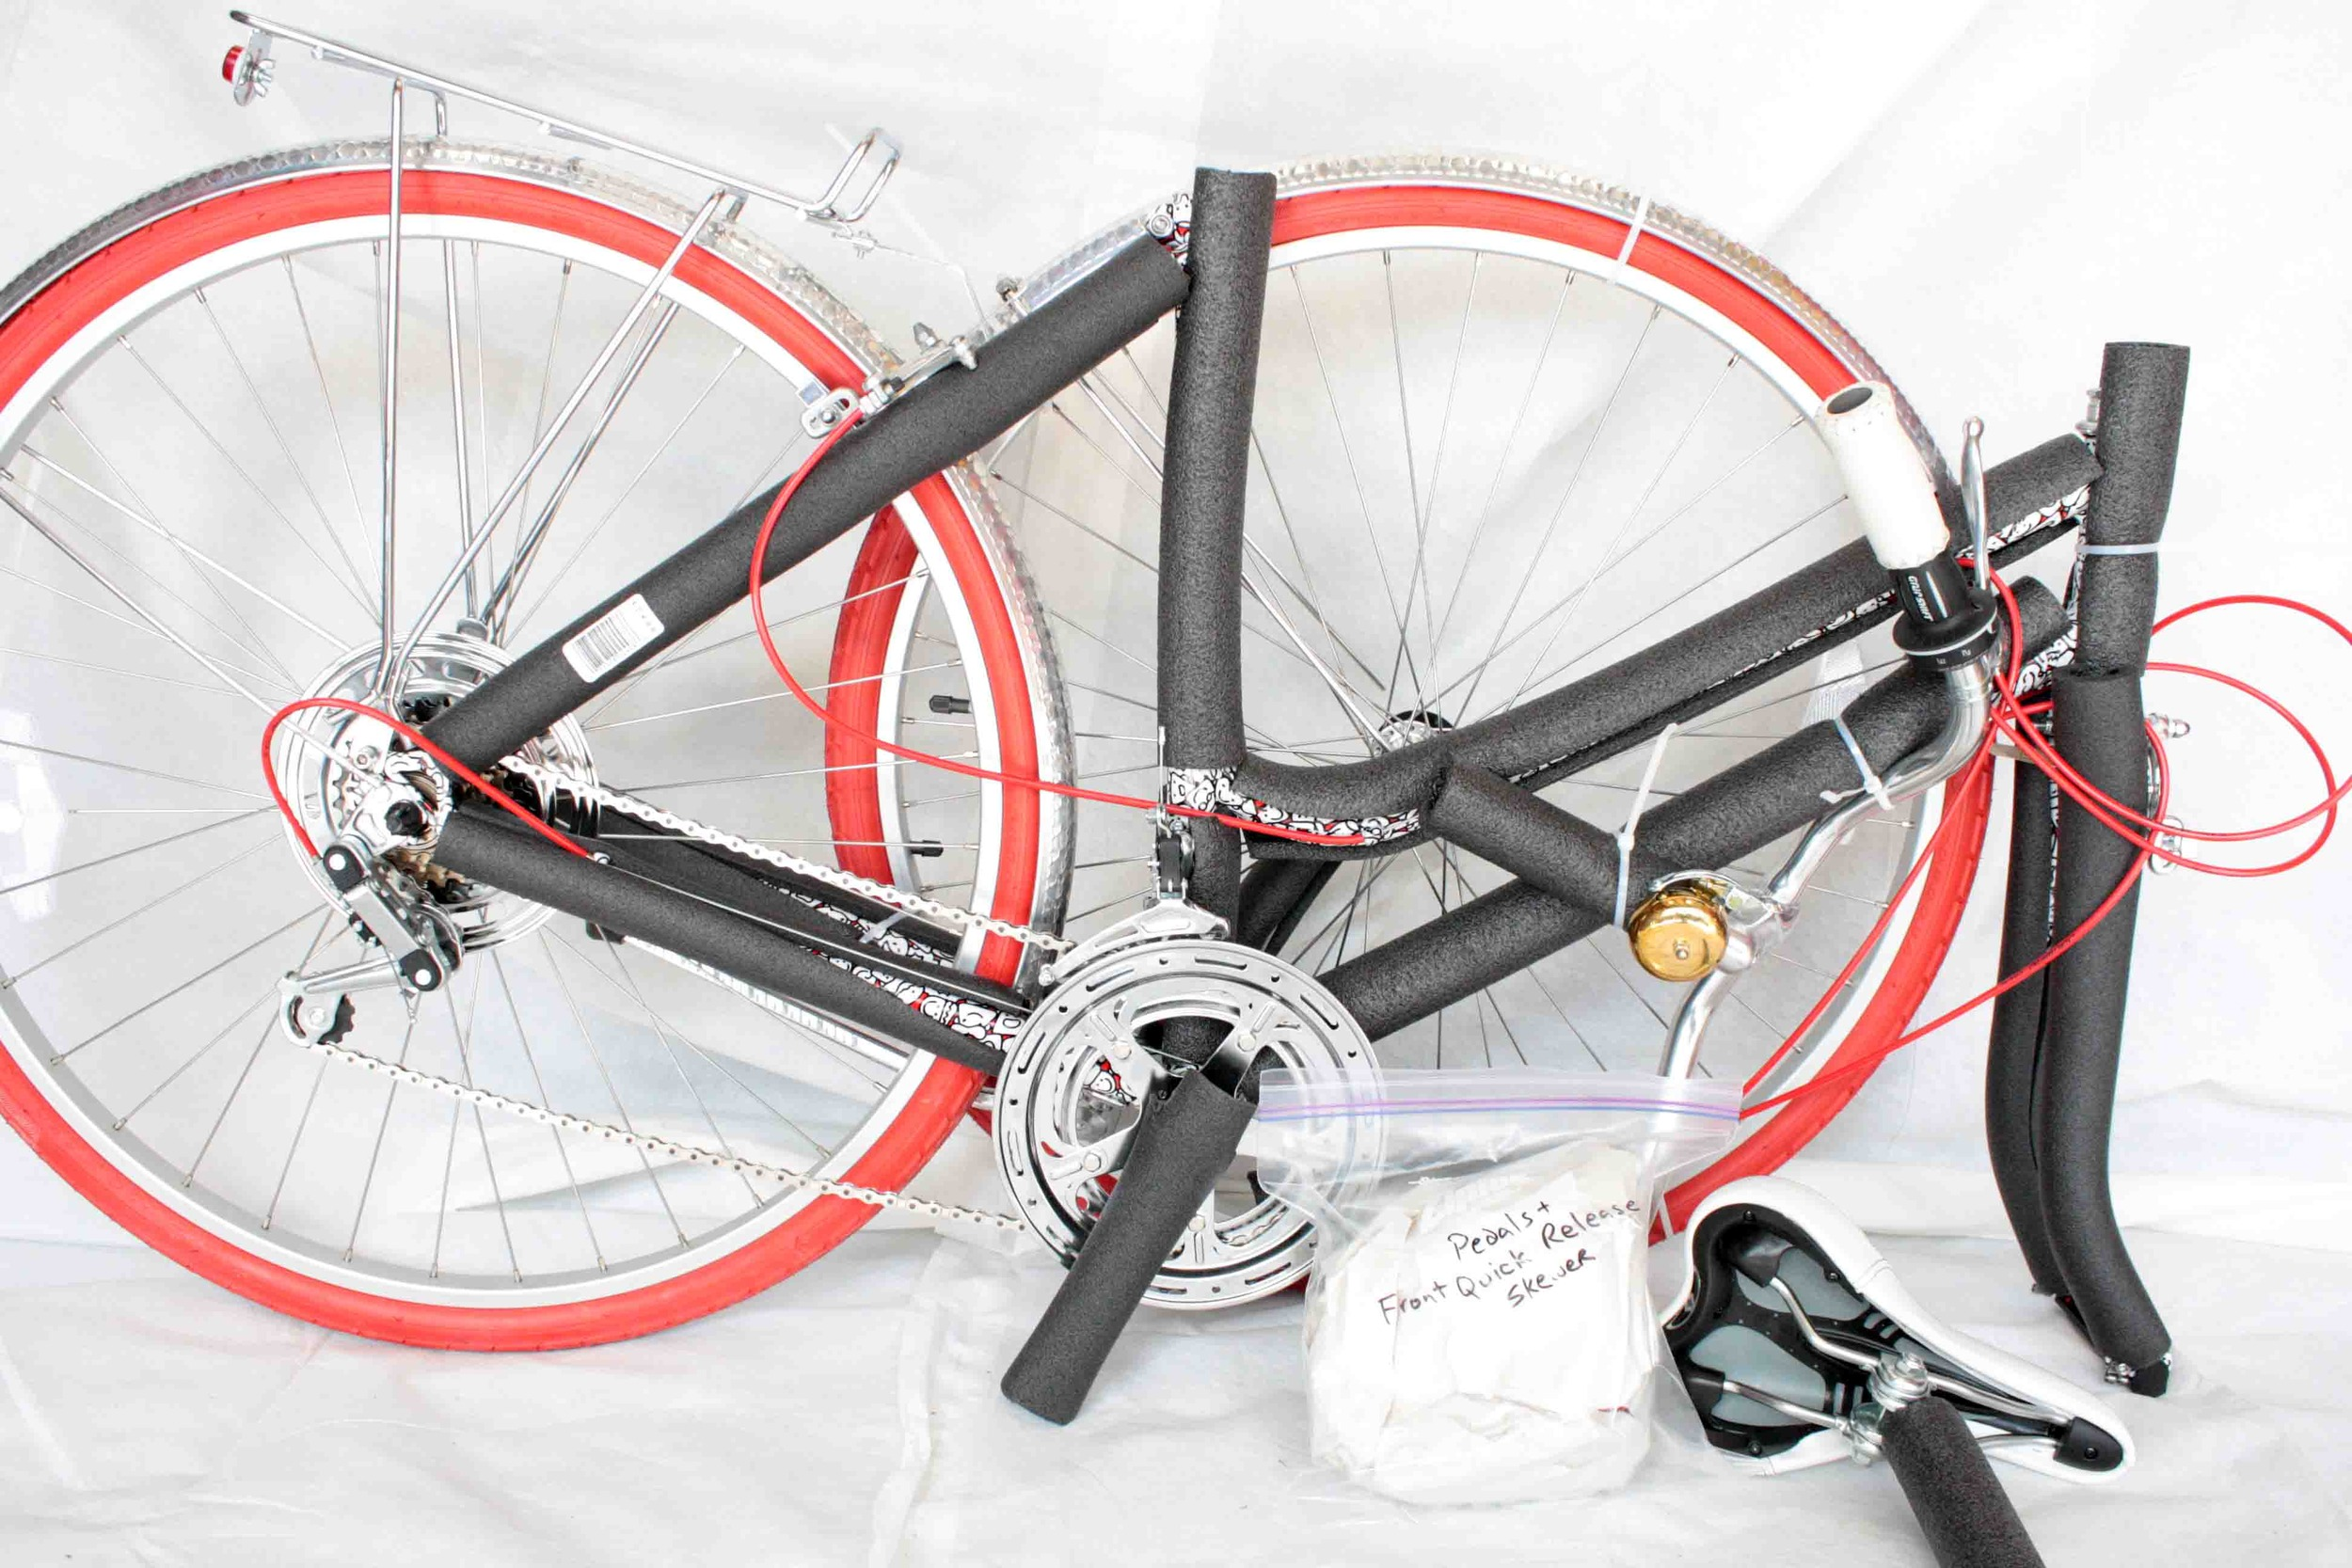 Set aside the bag containing the pedals and front quick release.